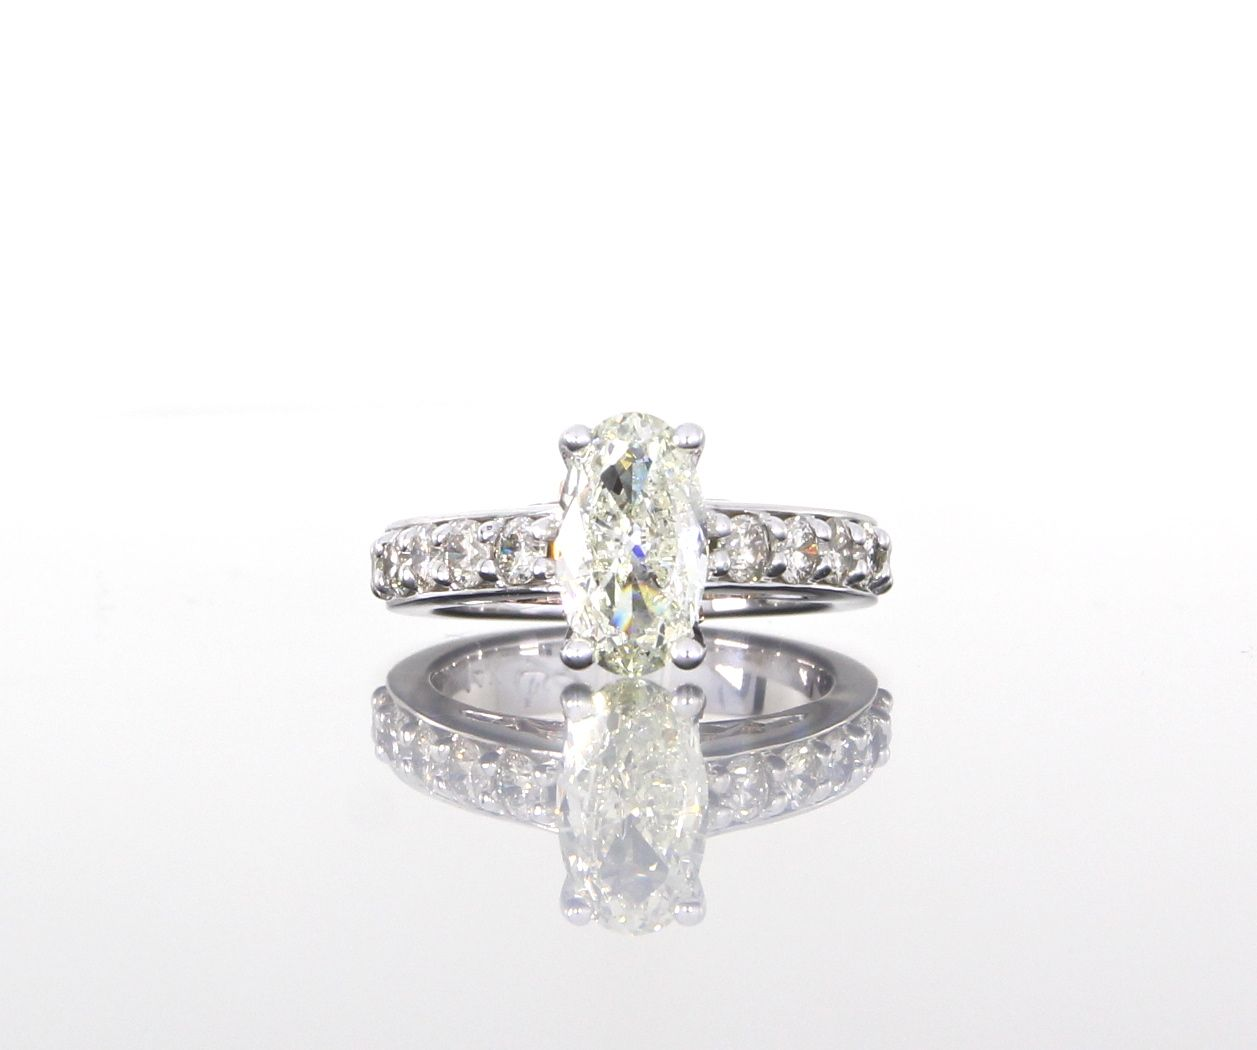 Oval diamond engagement ring in white gold custom made at craft